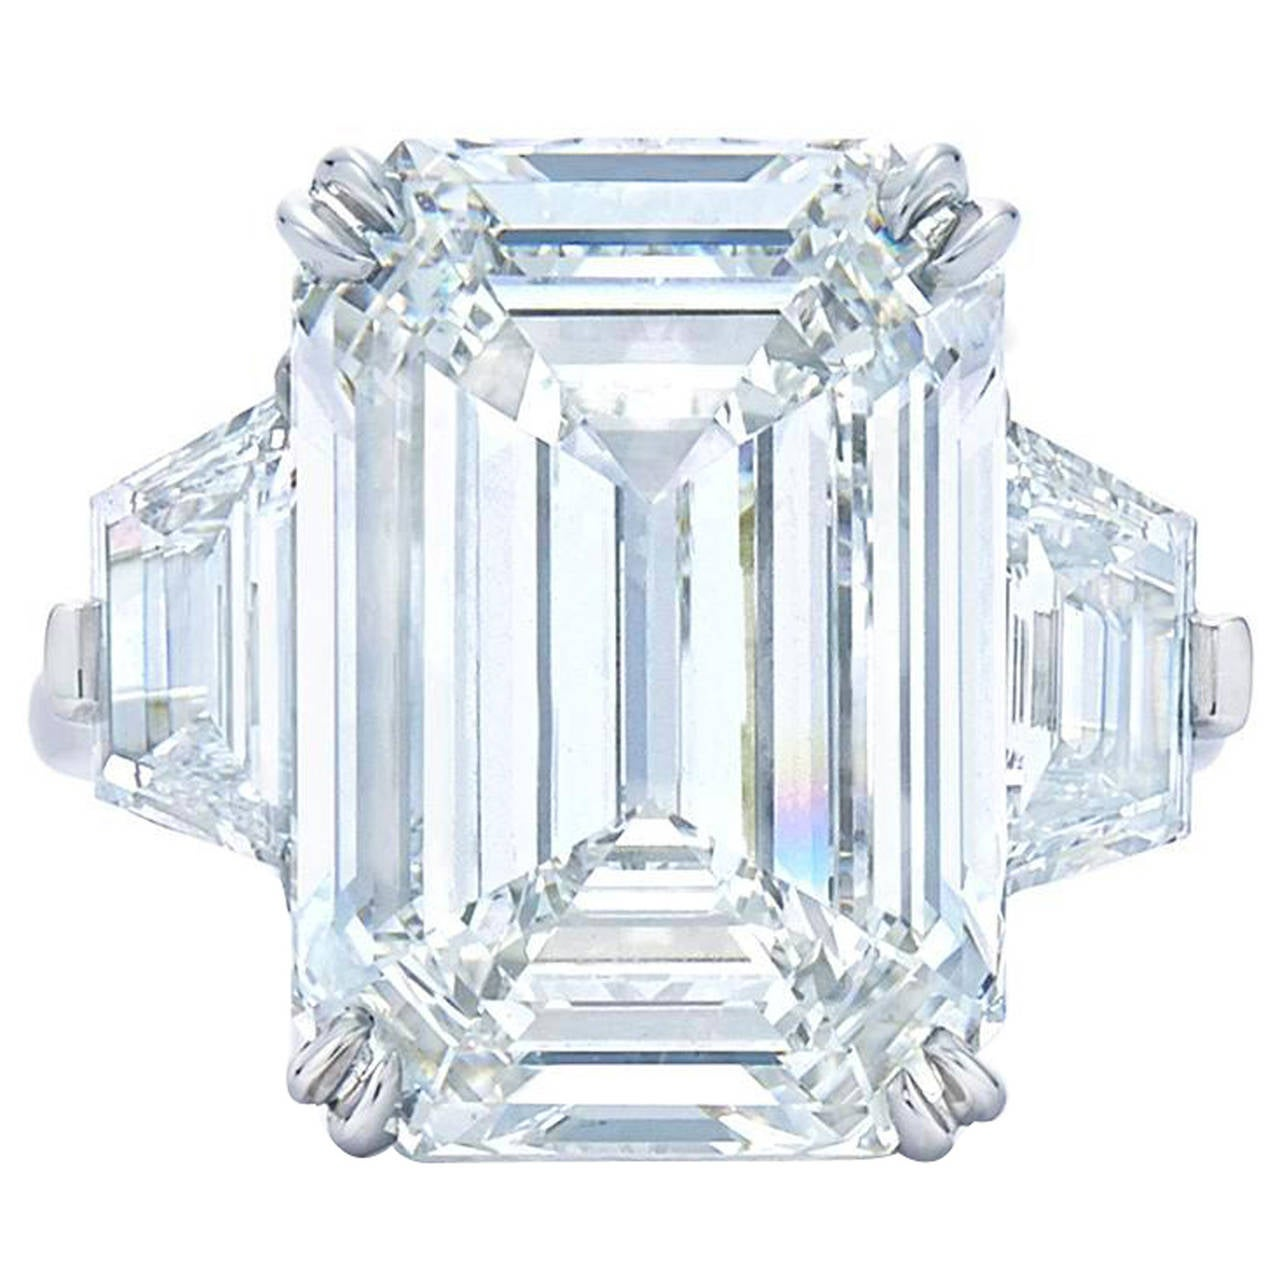 8.01ct Emerald Cut Diamond Ring For Sale